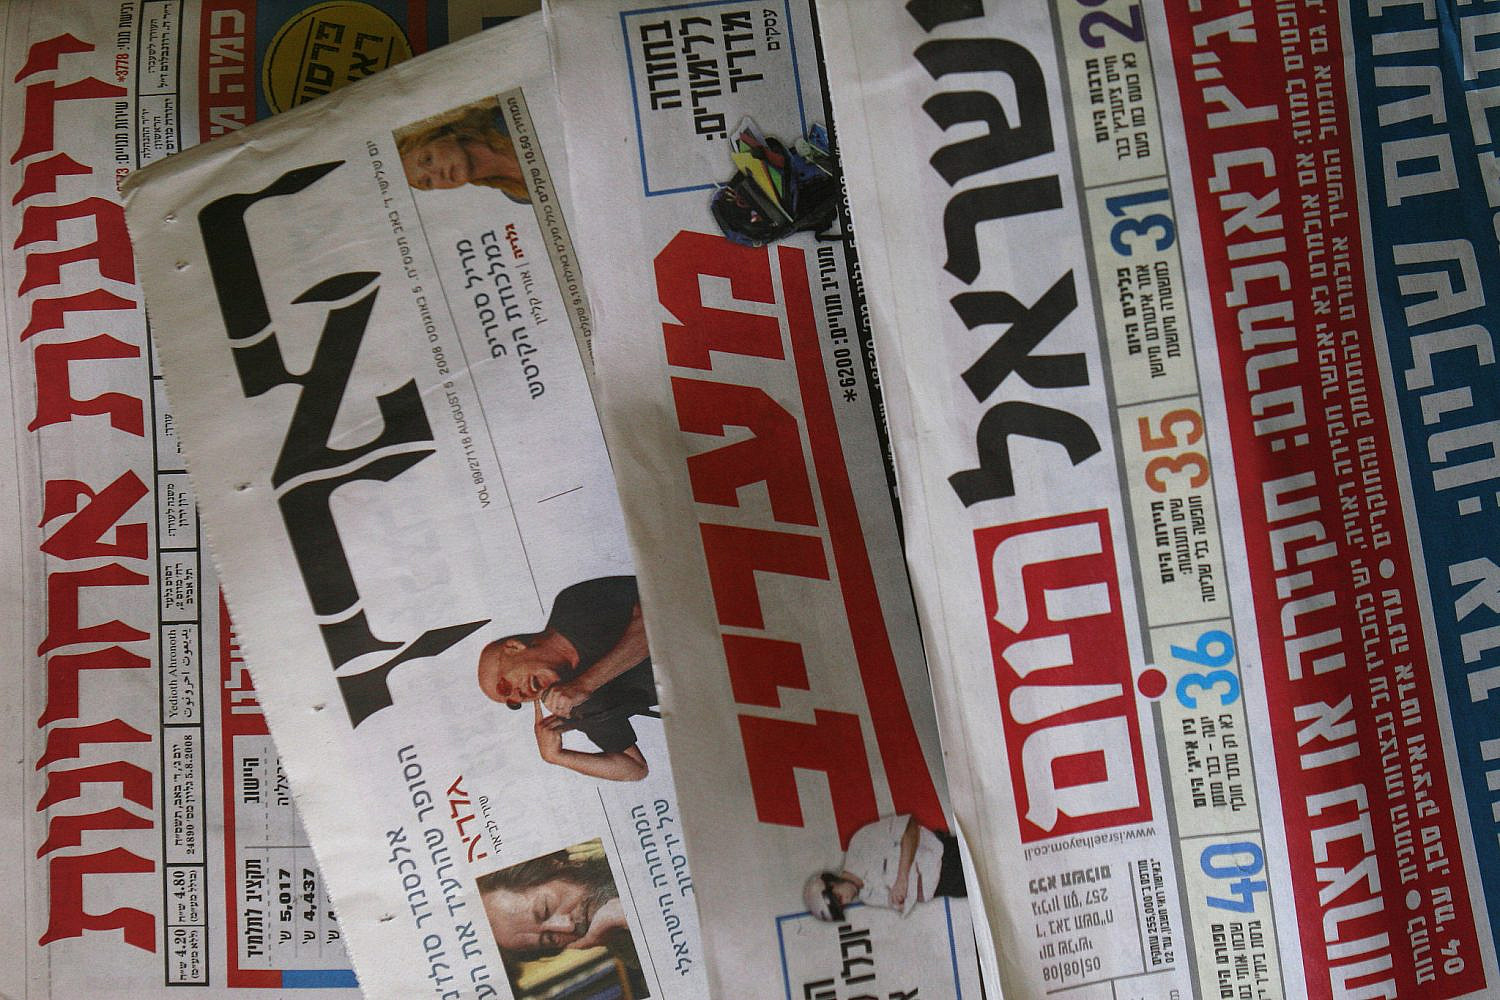 Four main papers in Israel: Yediot Ahronot, Maariv, Haaretz, and Israel Hayom, Aug. 5, 2008. (Olivier Fitoussi/Flash90)